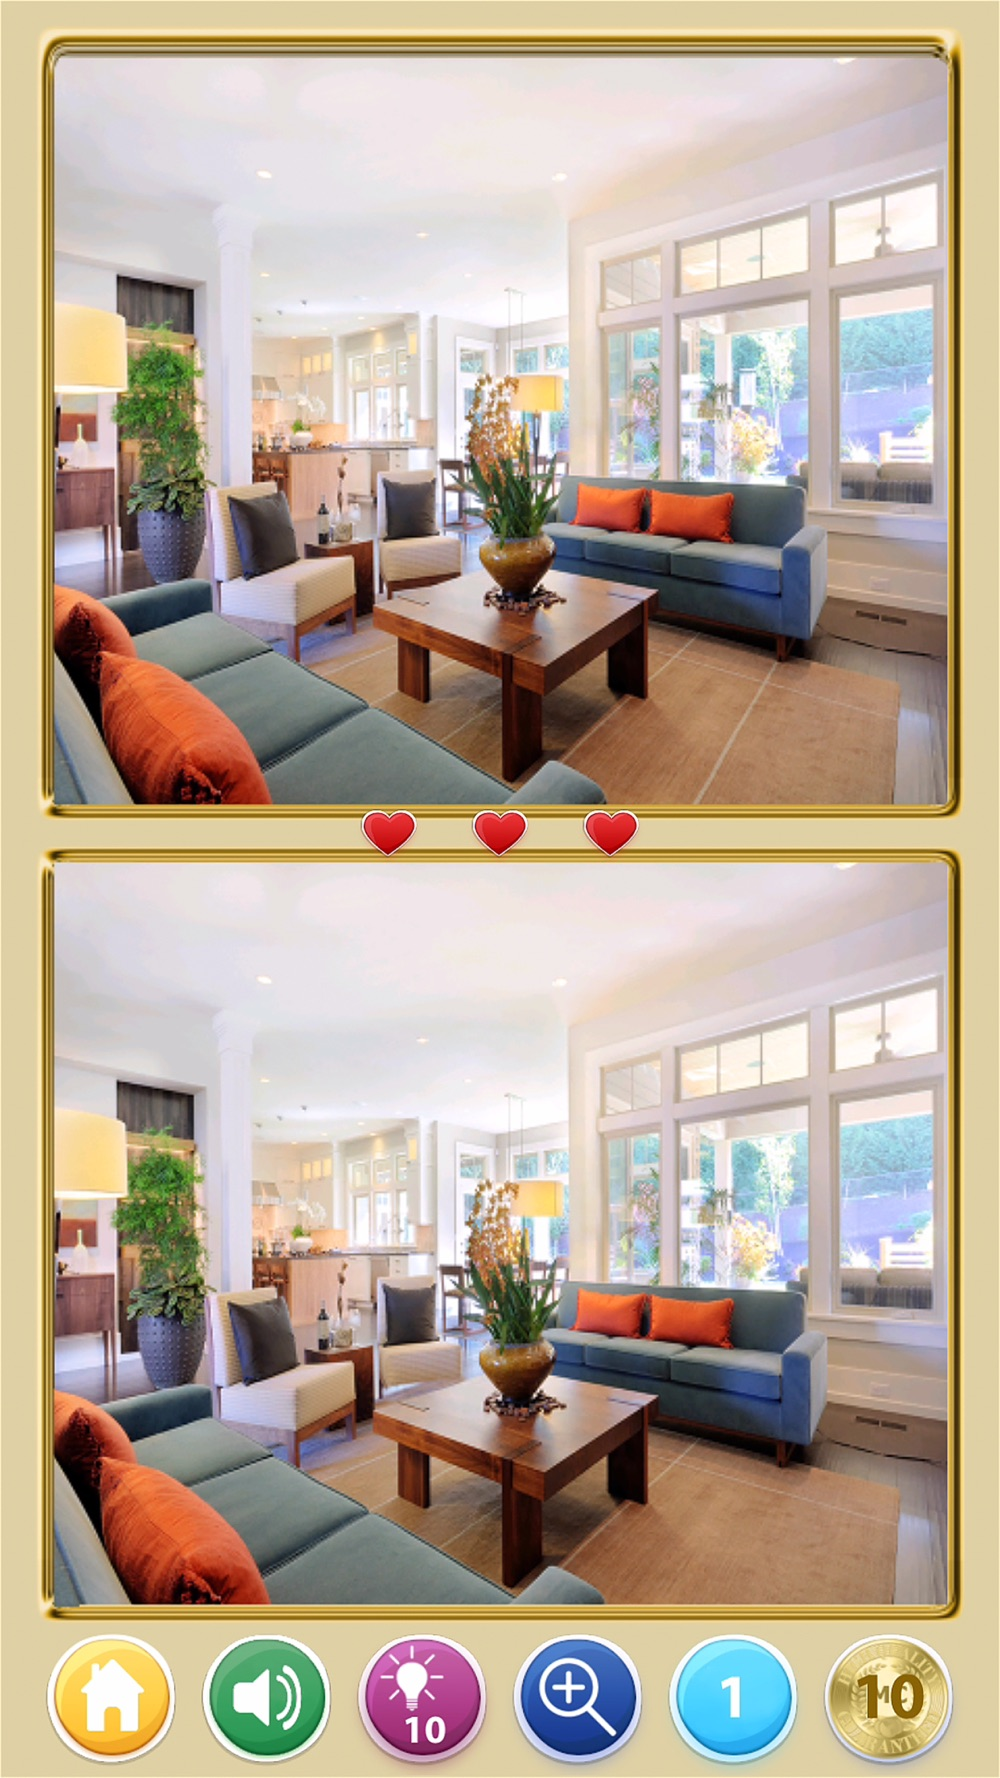 Find The Difference! Rooms HD Cheat Codes